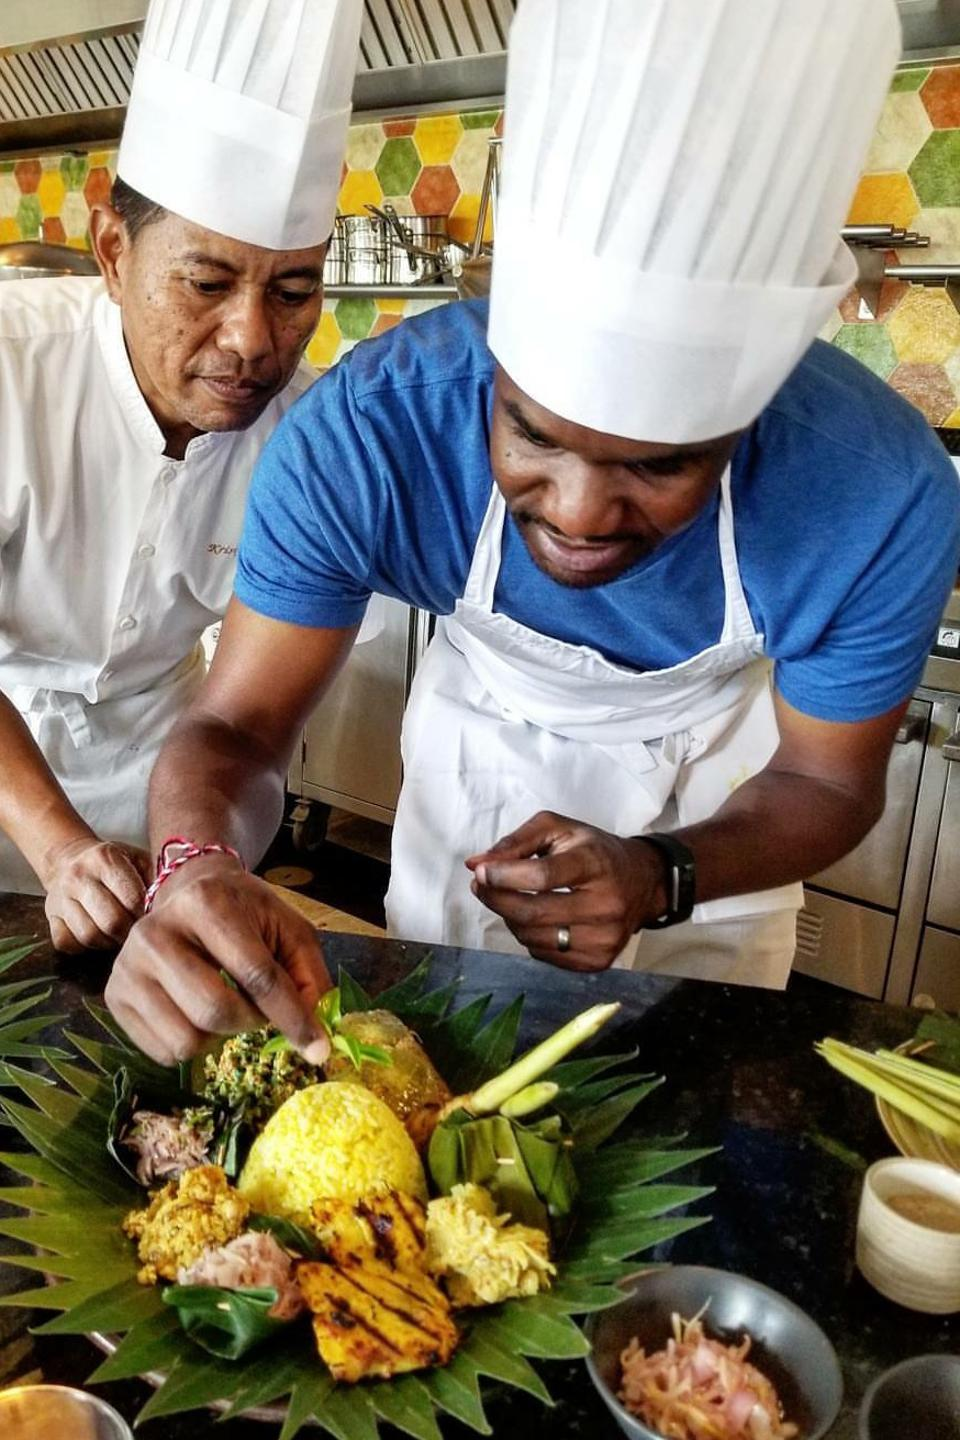 DeMarco Williams at a cooking class in Bali